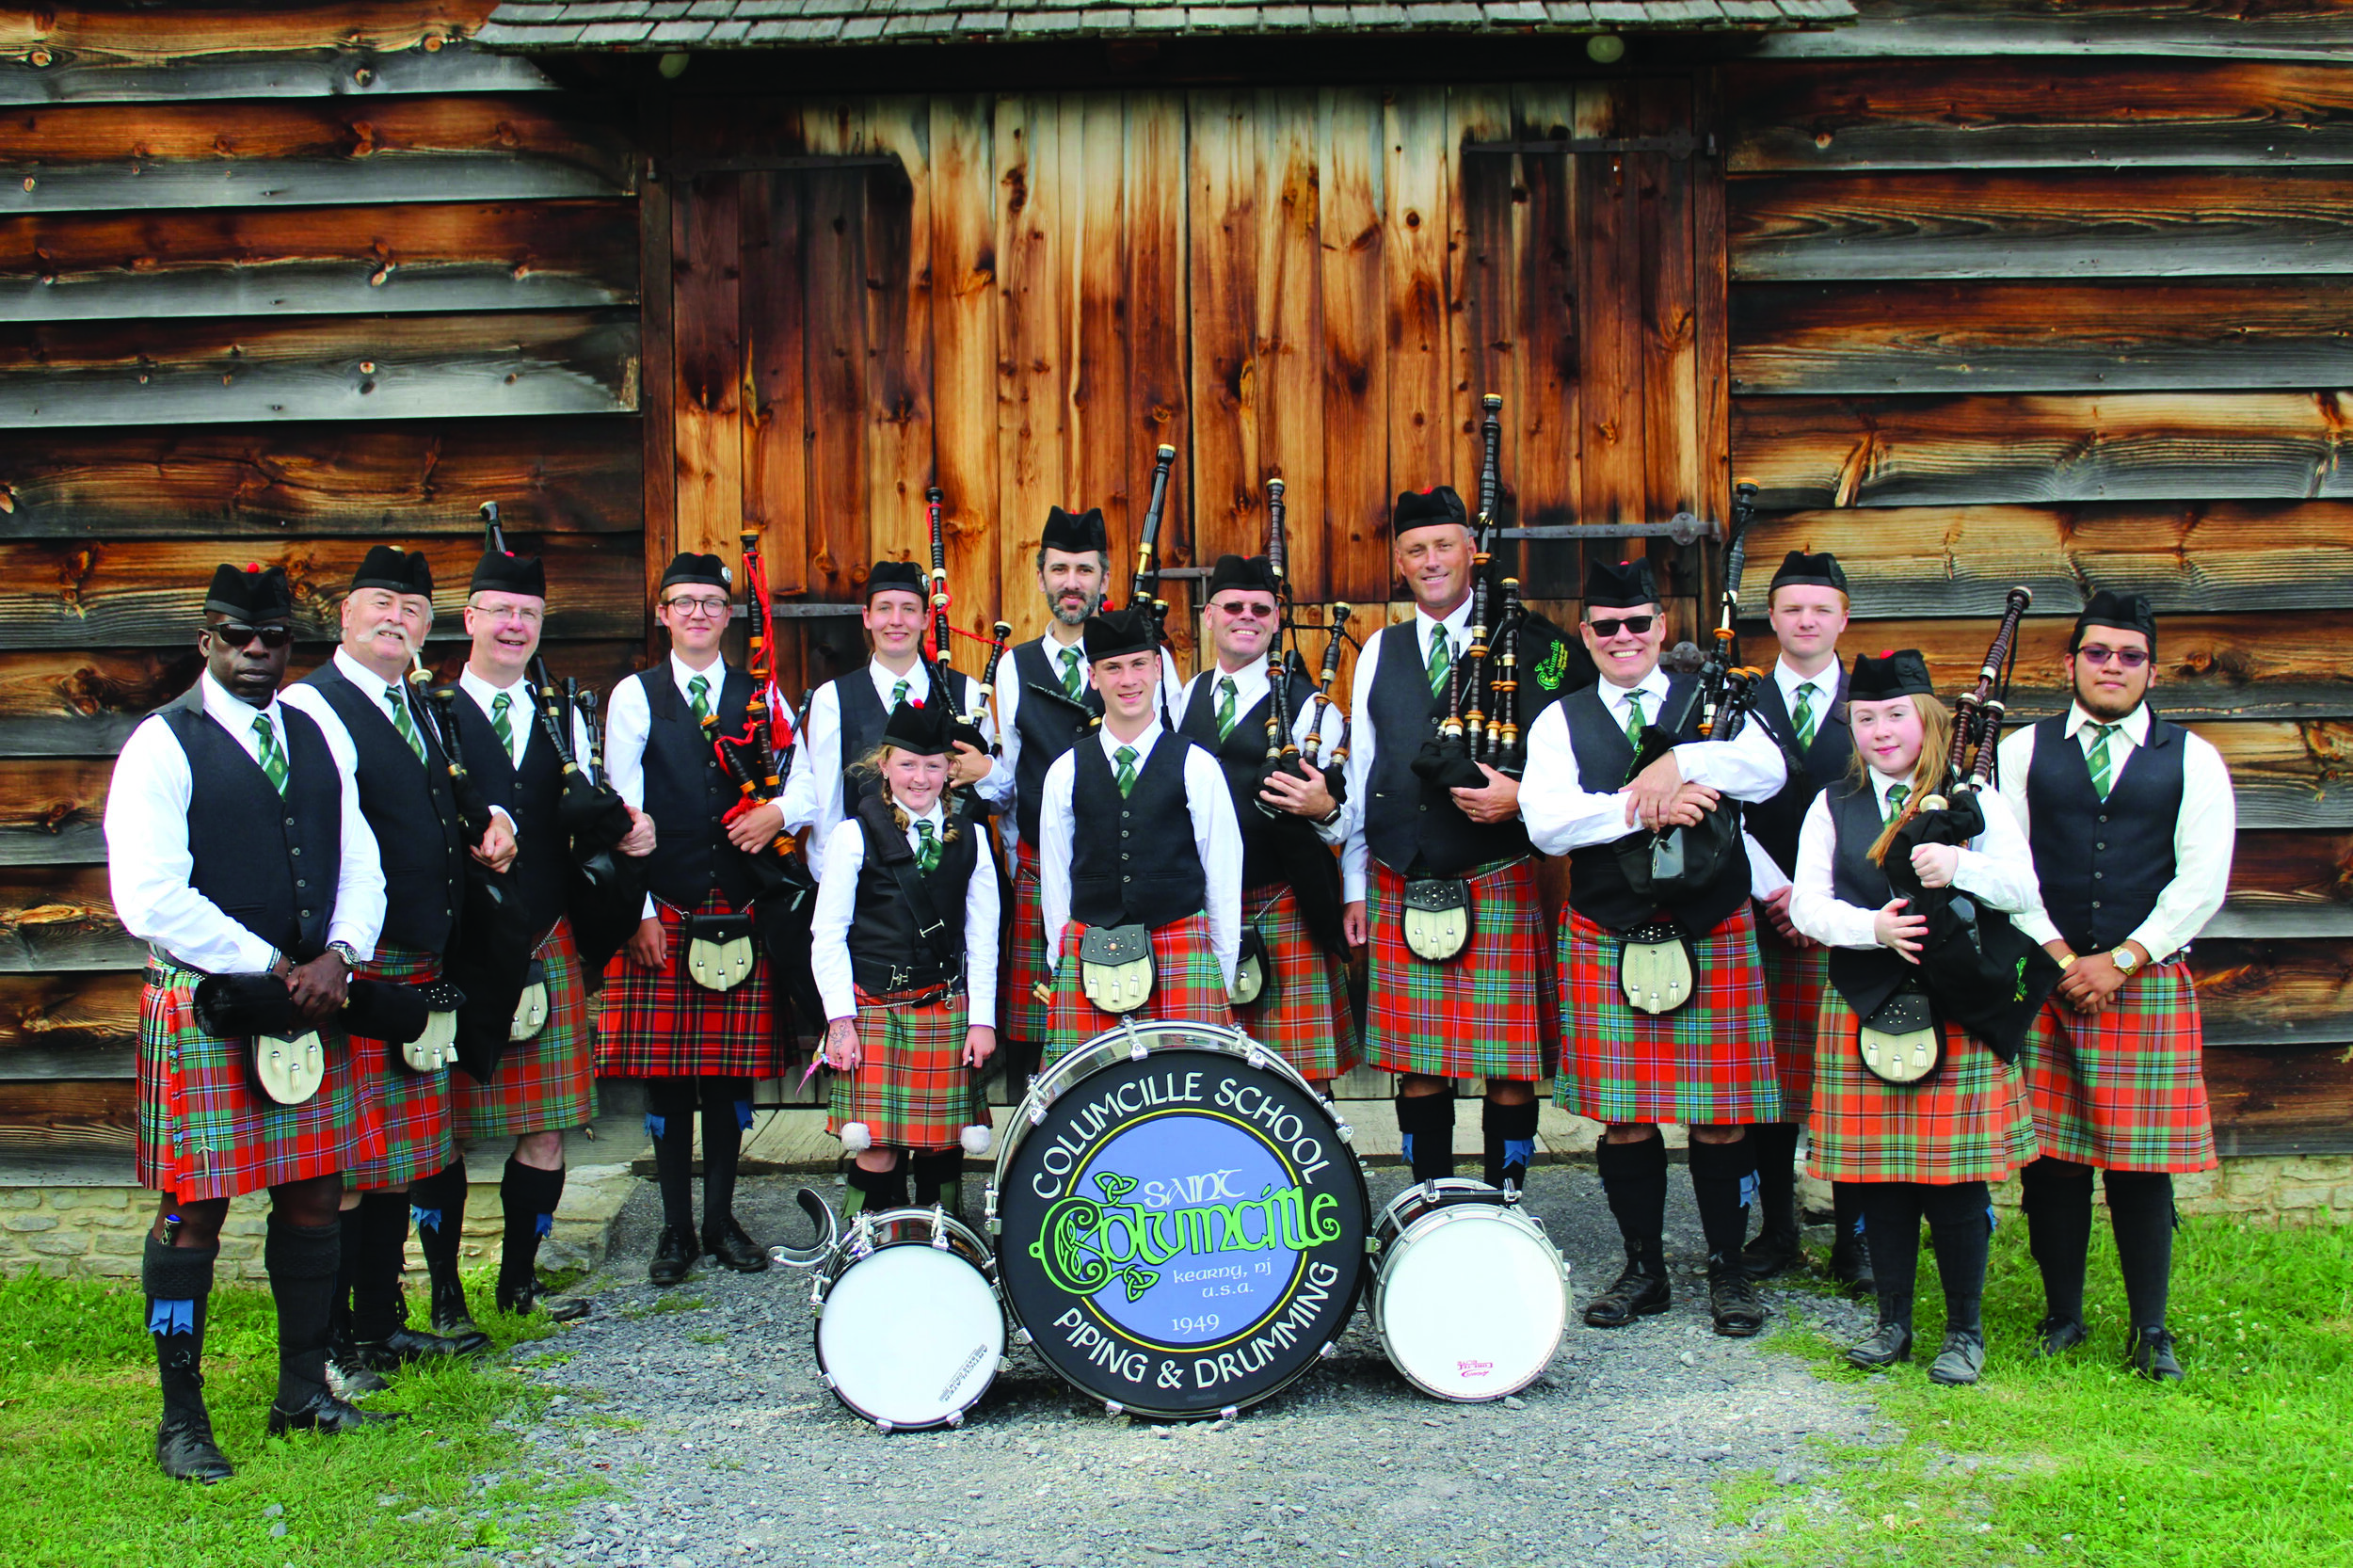 Columcille School of Piping and Drumming at the 2019 Capital District Scottish Games.